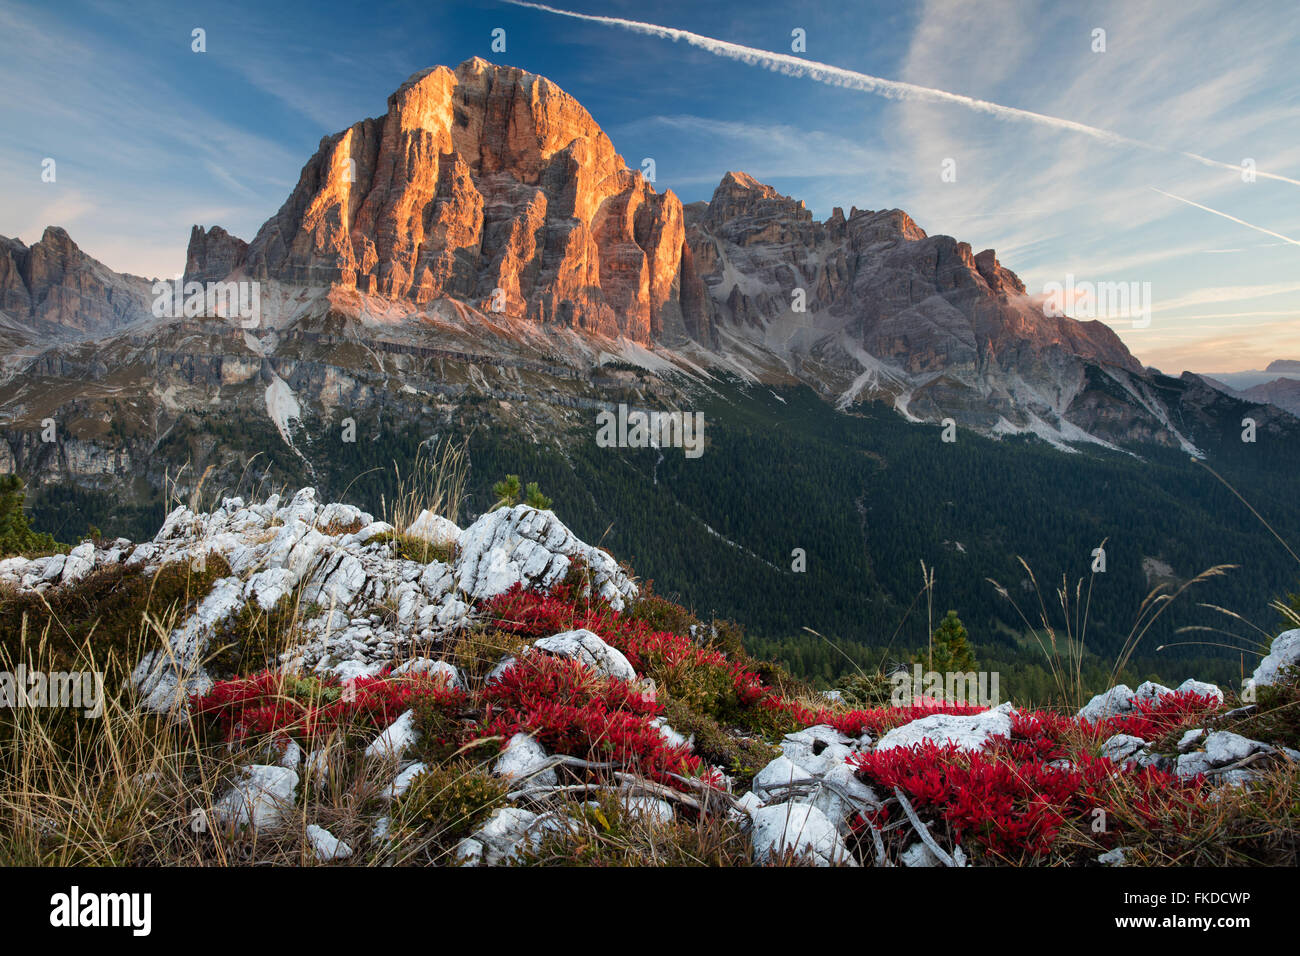 first light on Tofana de Rozes from Cinque Torri, Dolomite Mountains,  Belluno Province, Veneto, Italy - Stock Image